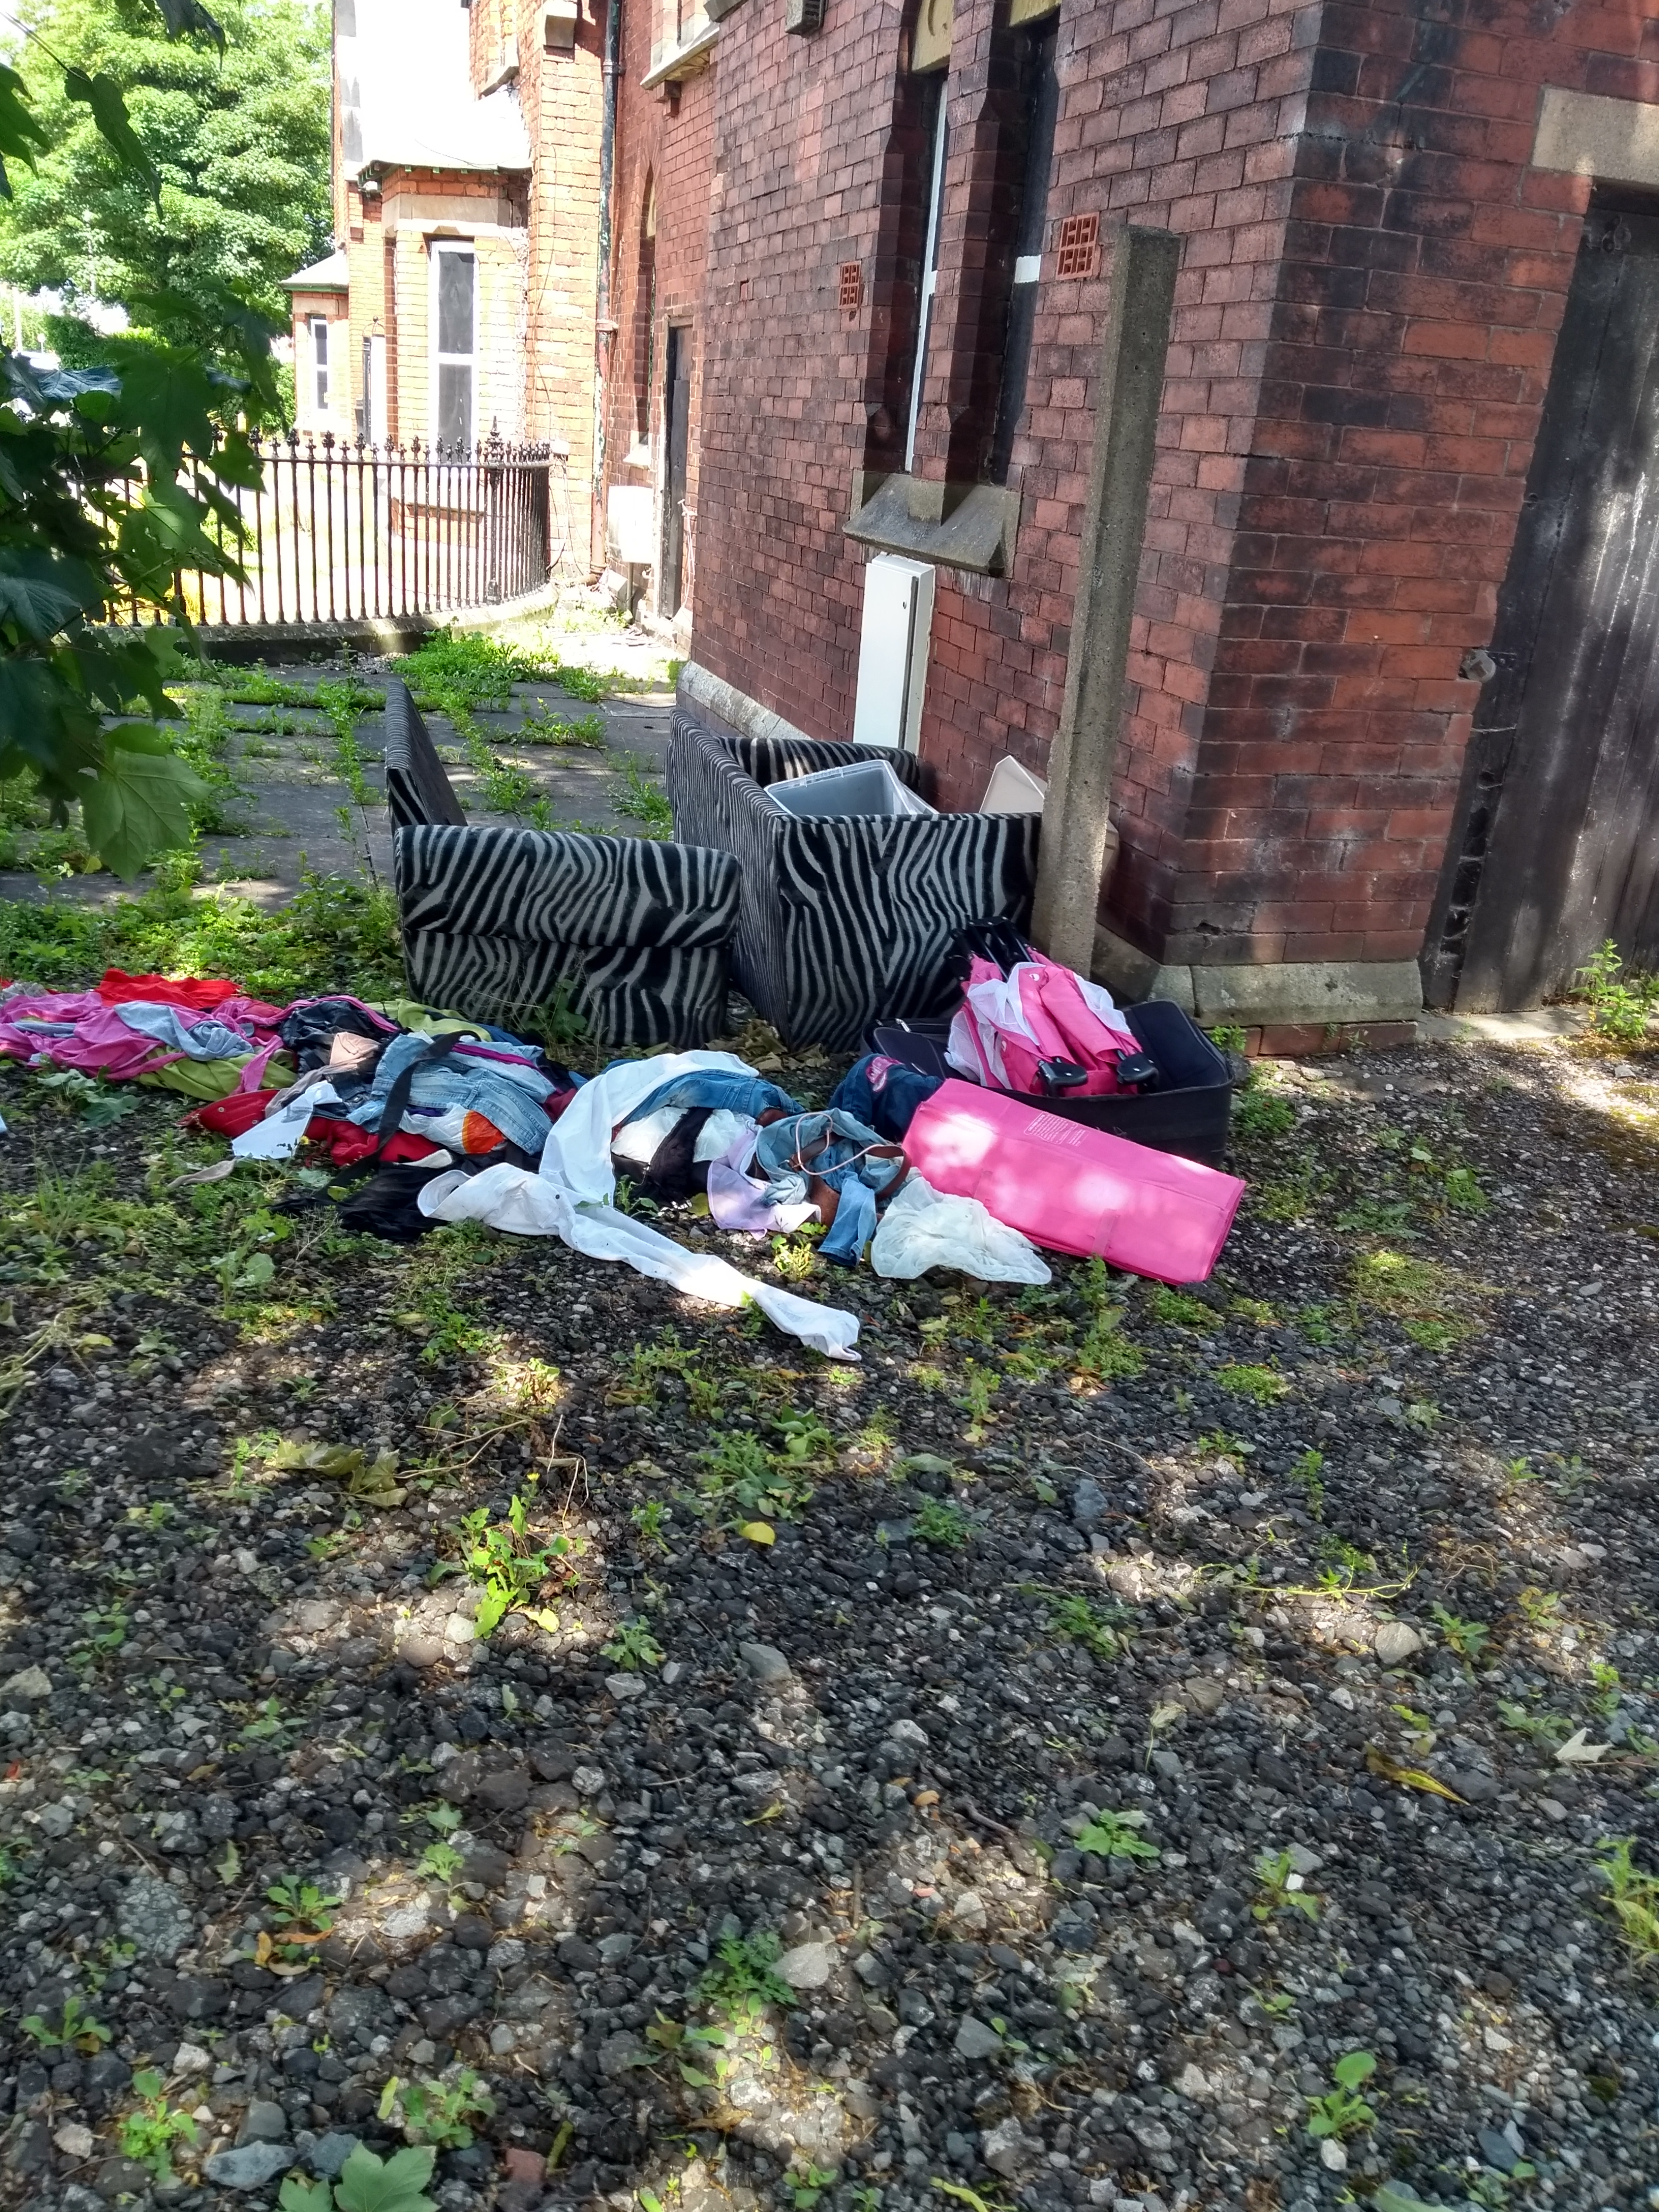 Shocked relative was 'utterly disgusted' to see Duke Street Cemetery fall victim to fly-tipping